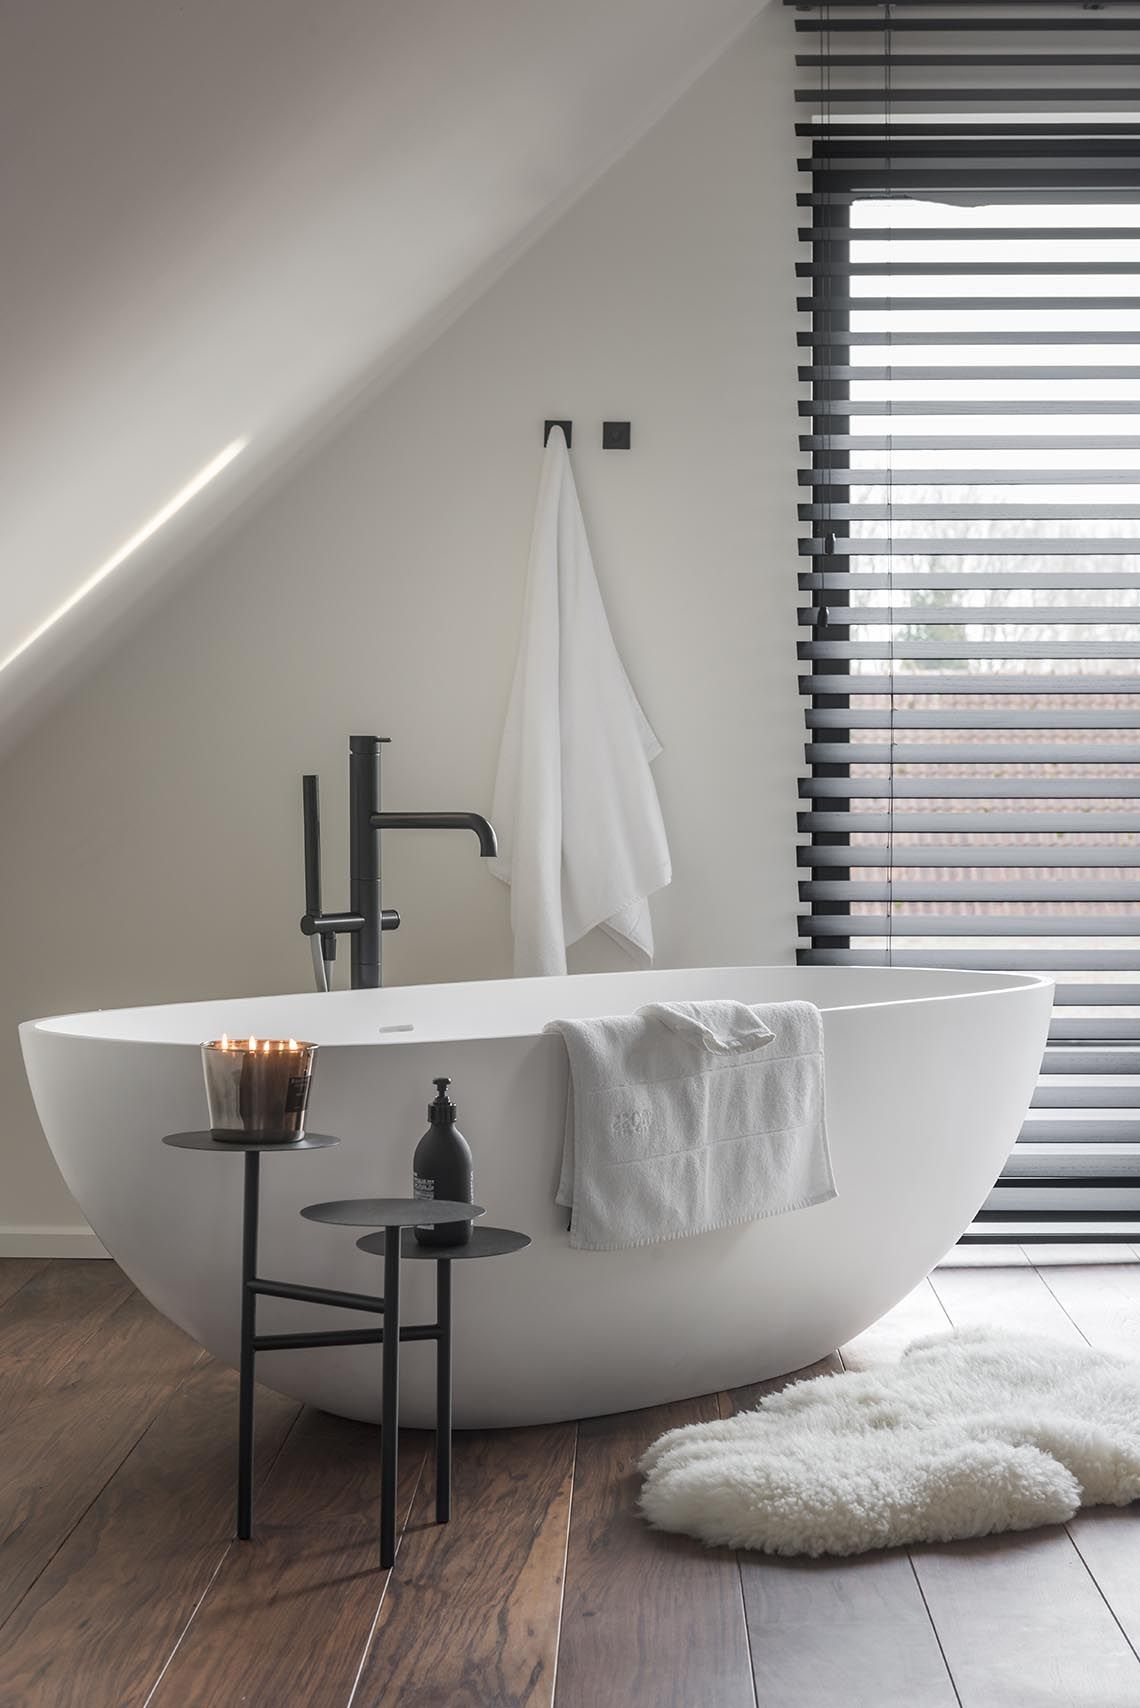 Salle De Bain Originale Jones Living Badkamer Baden In Rust Luxus Wonen H O M E